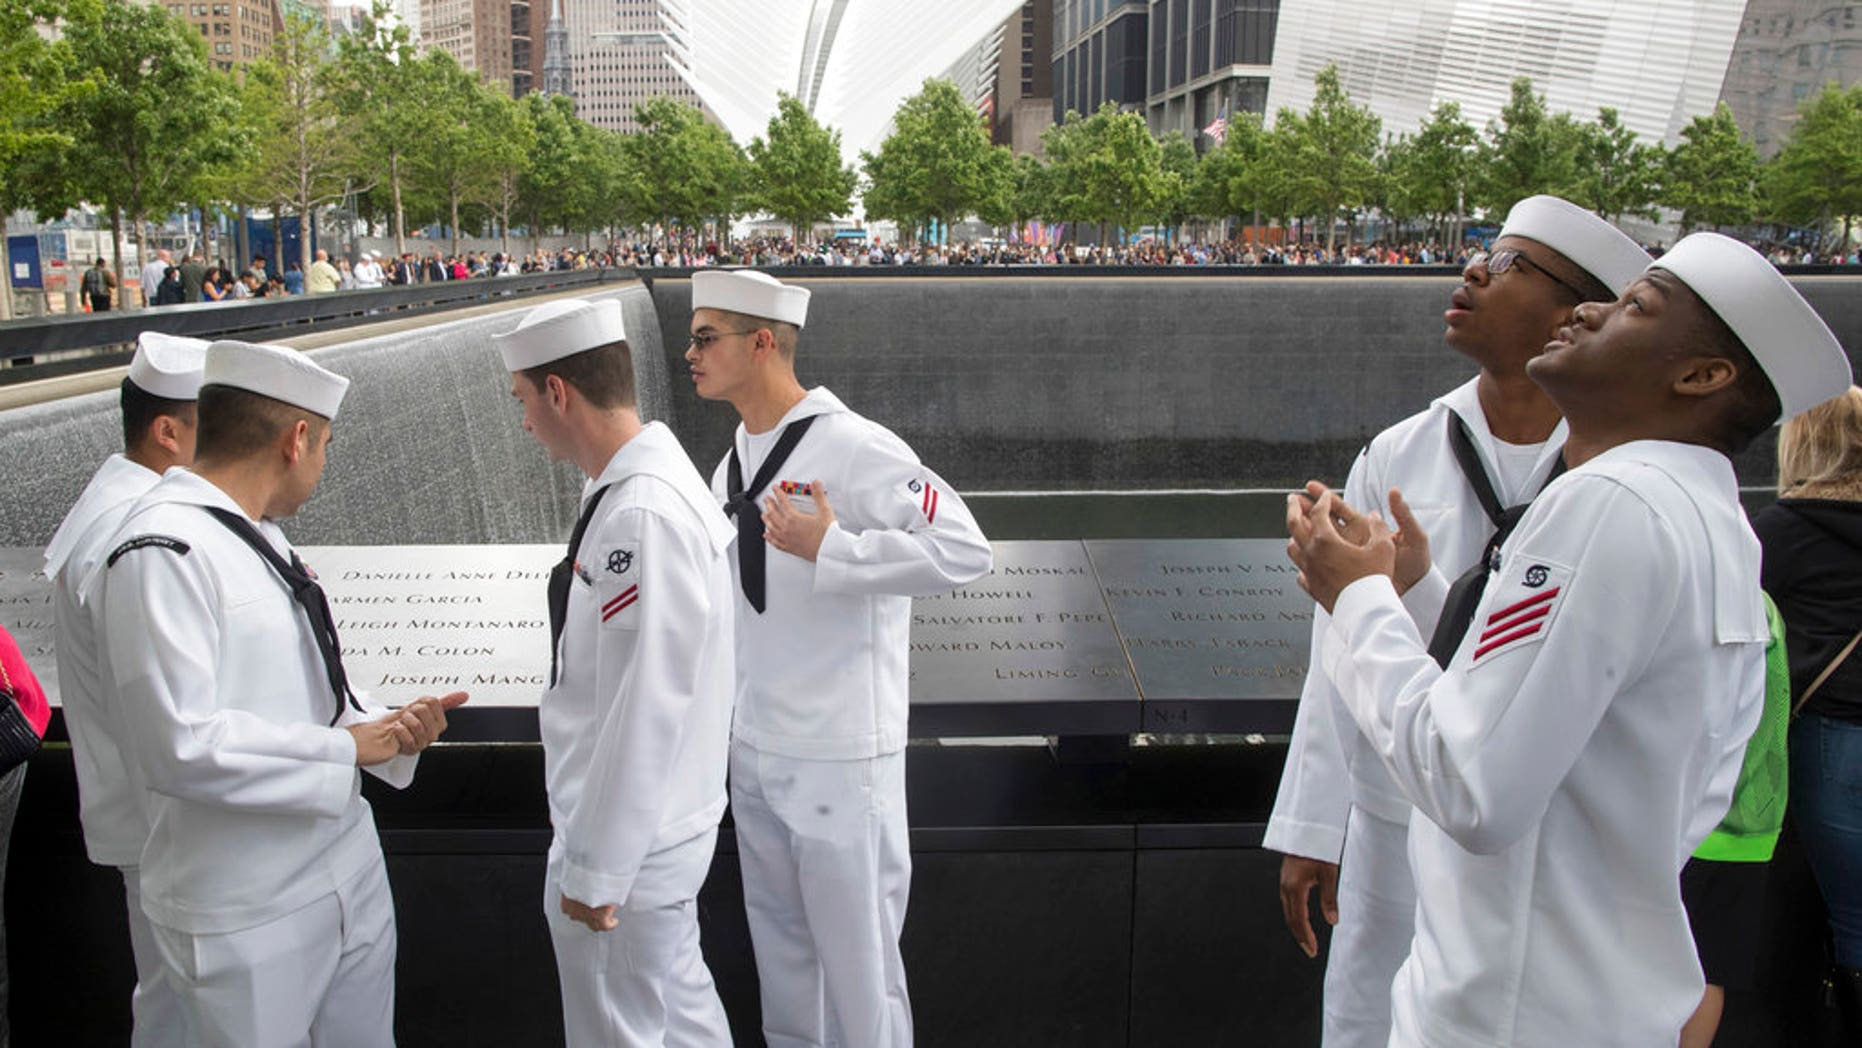 During Fleet Week 2017, Sailors, Marines and Coast Guardsmen visited the National 9/11 Memorial in New York.